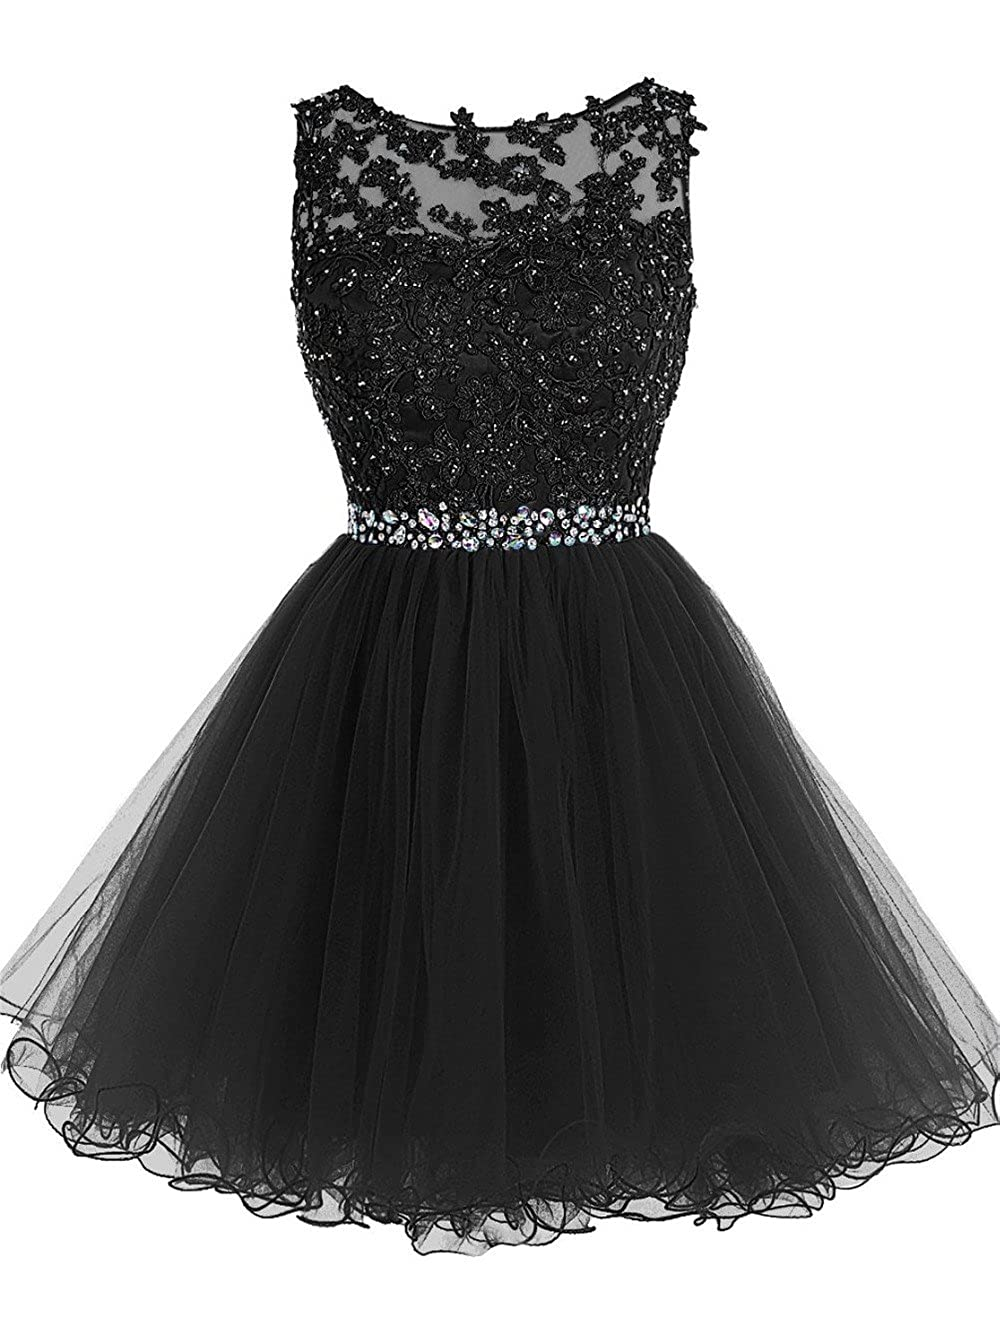 Black SHANGSHANGXI Lace Appliques Short Prom Dresses Tulle Beaded Homecoming Party Dress